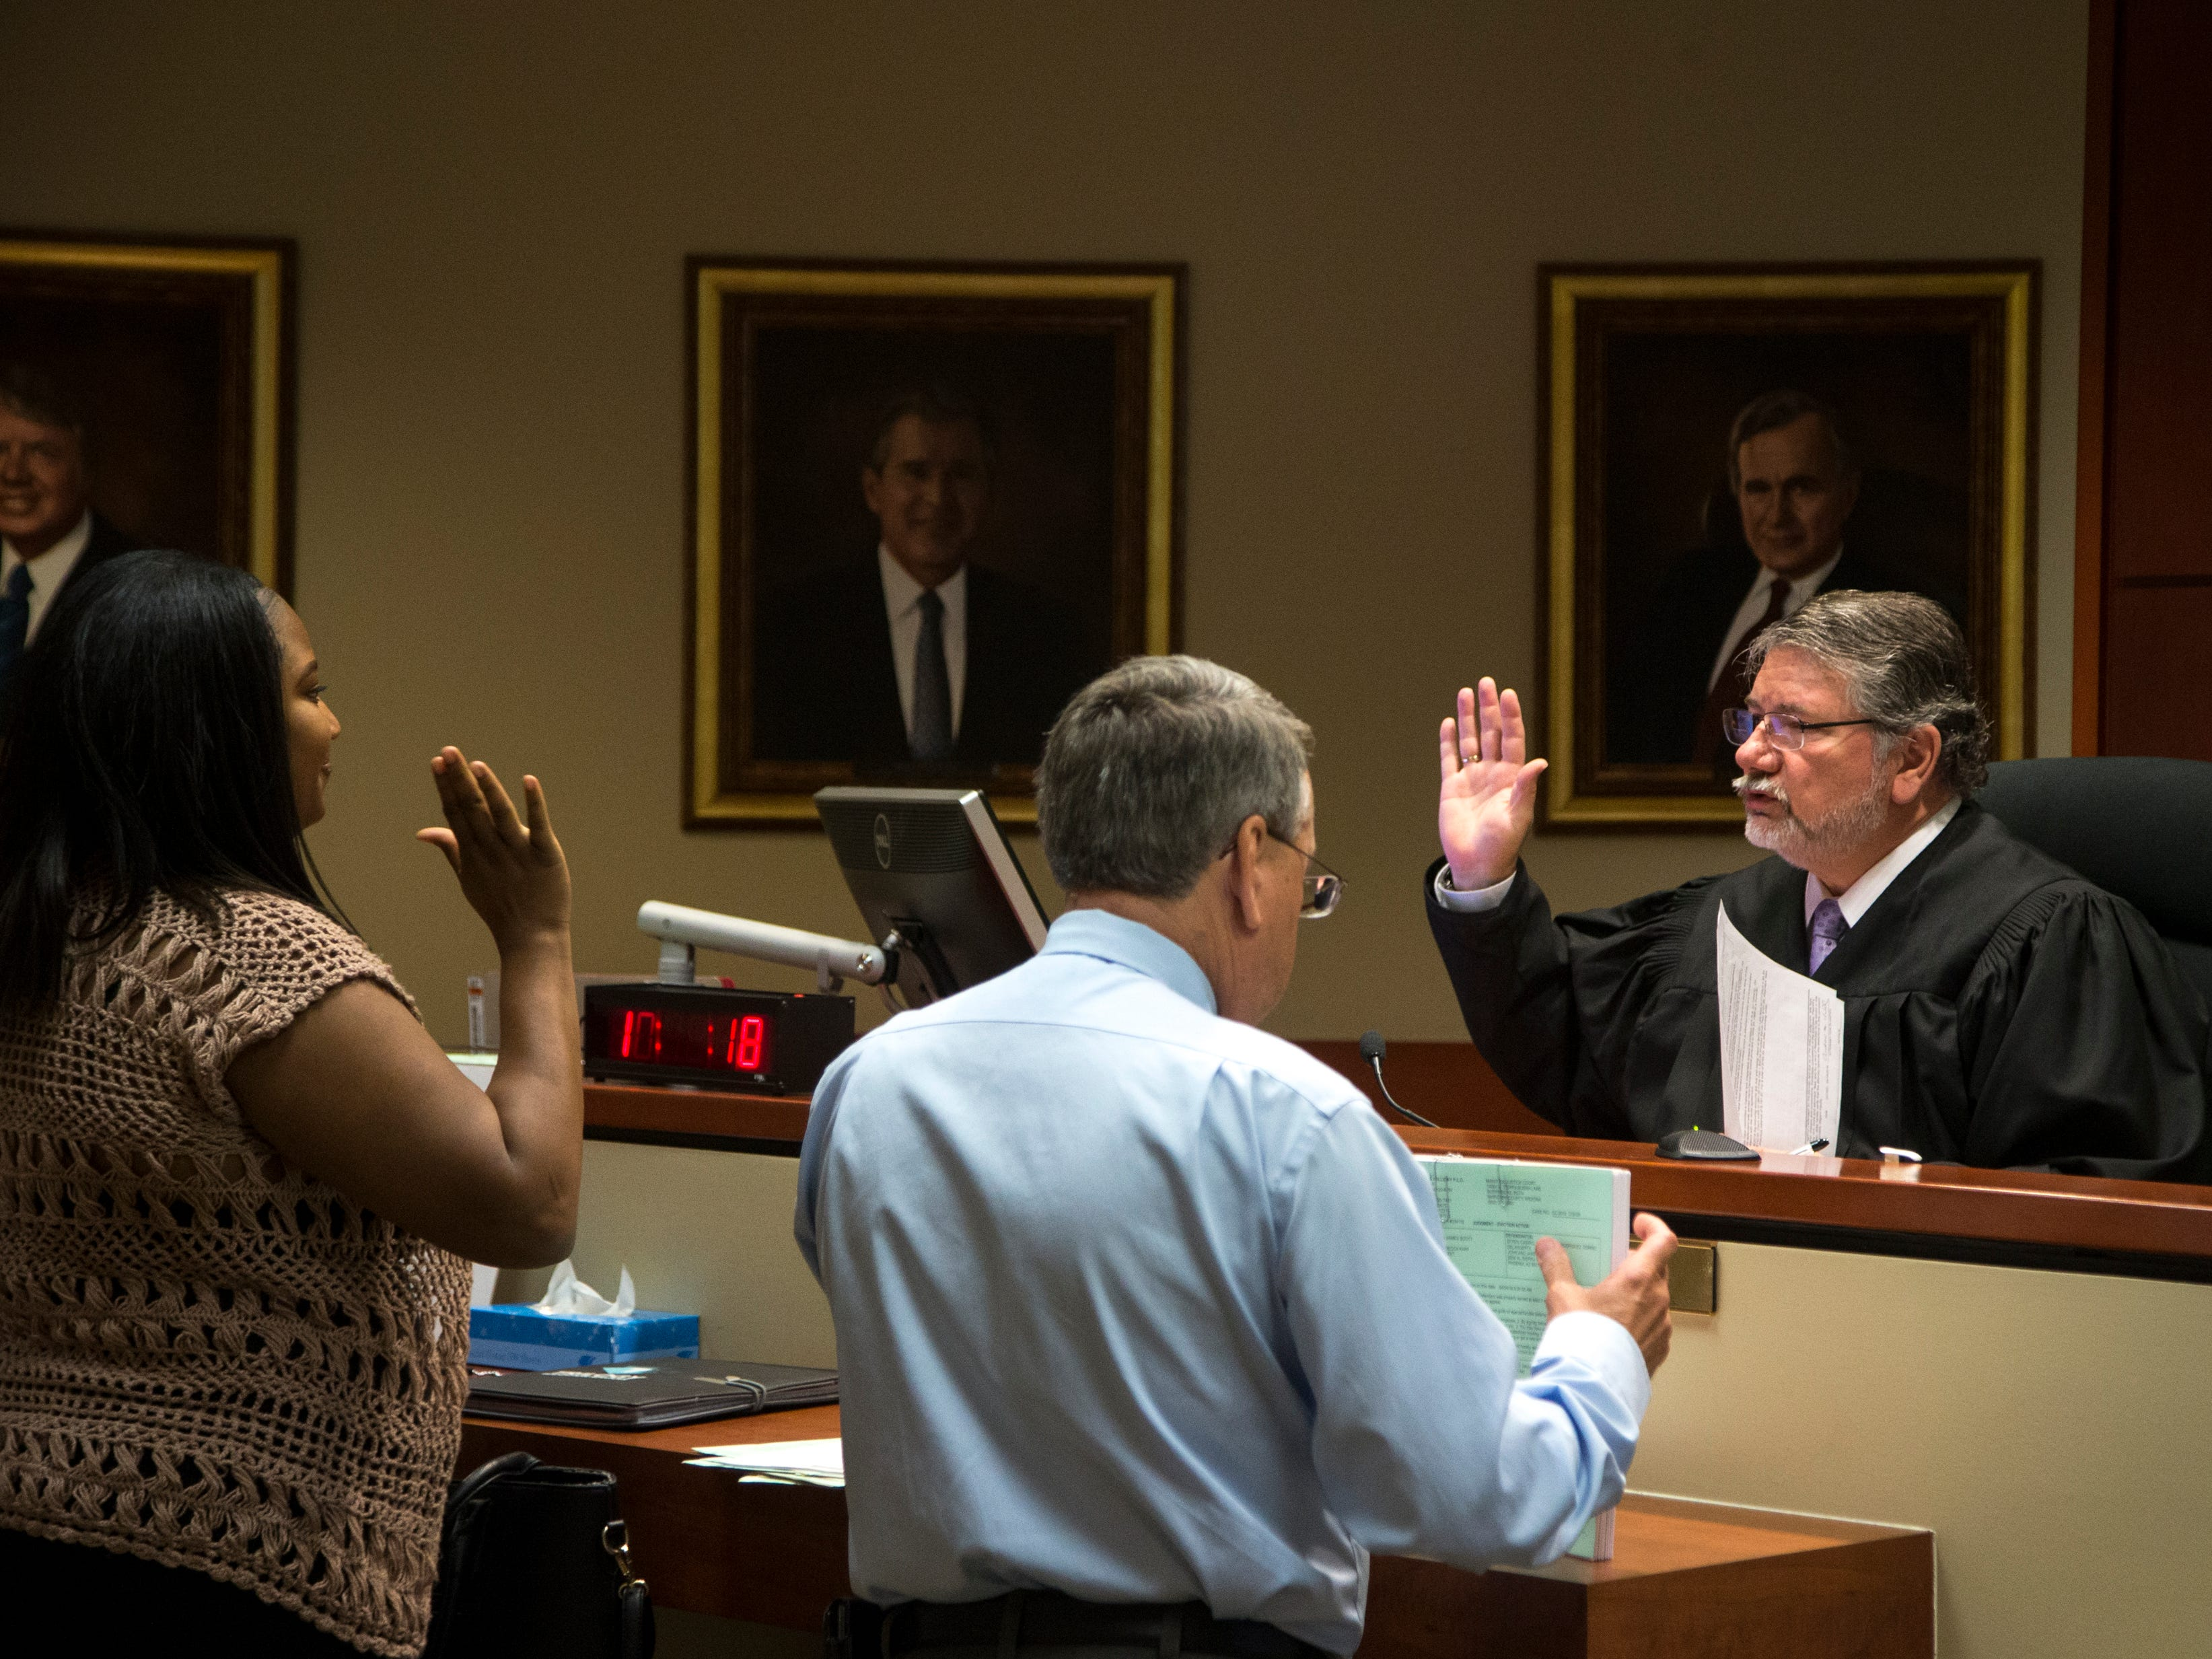 Judge Donald Watts swears in Dakiesha Owens during her eviction hearing on April 24, 2018, in Manistee Justice Court in Surprise. Maricopa County's landlords filed 62,800 eviction lawsuits last year, and more than two-thirds of those resulted in eviction judgments.